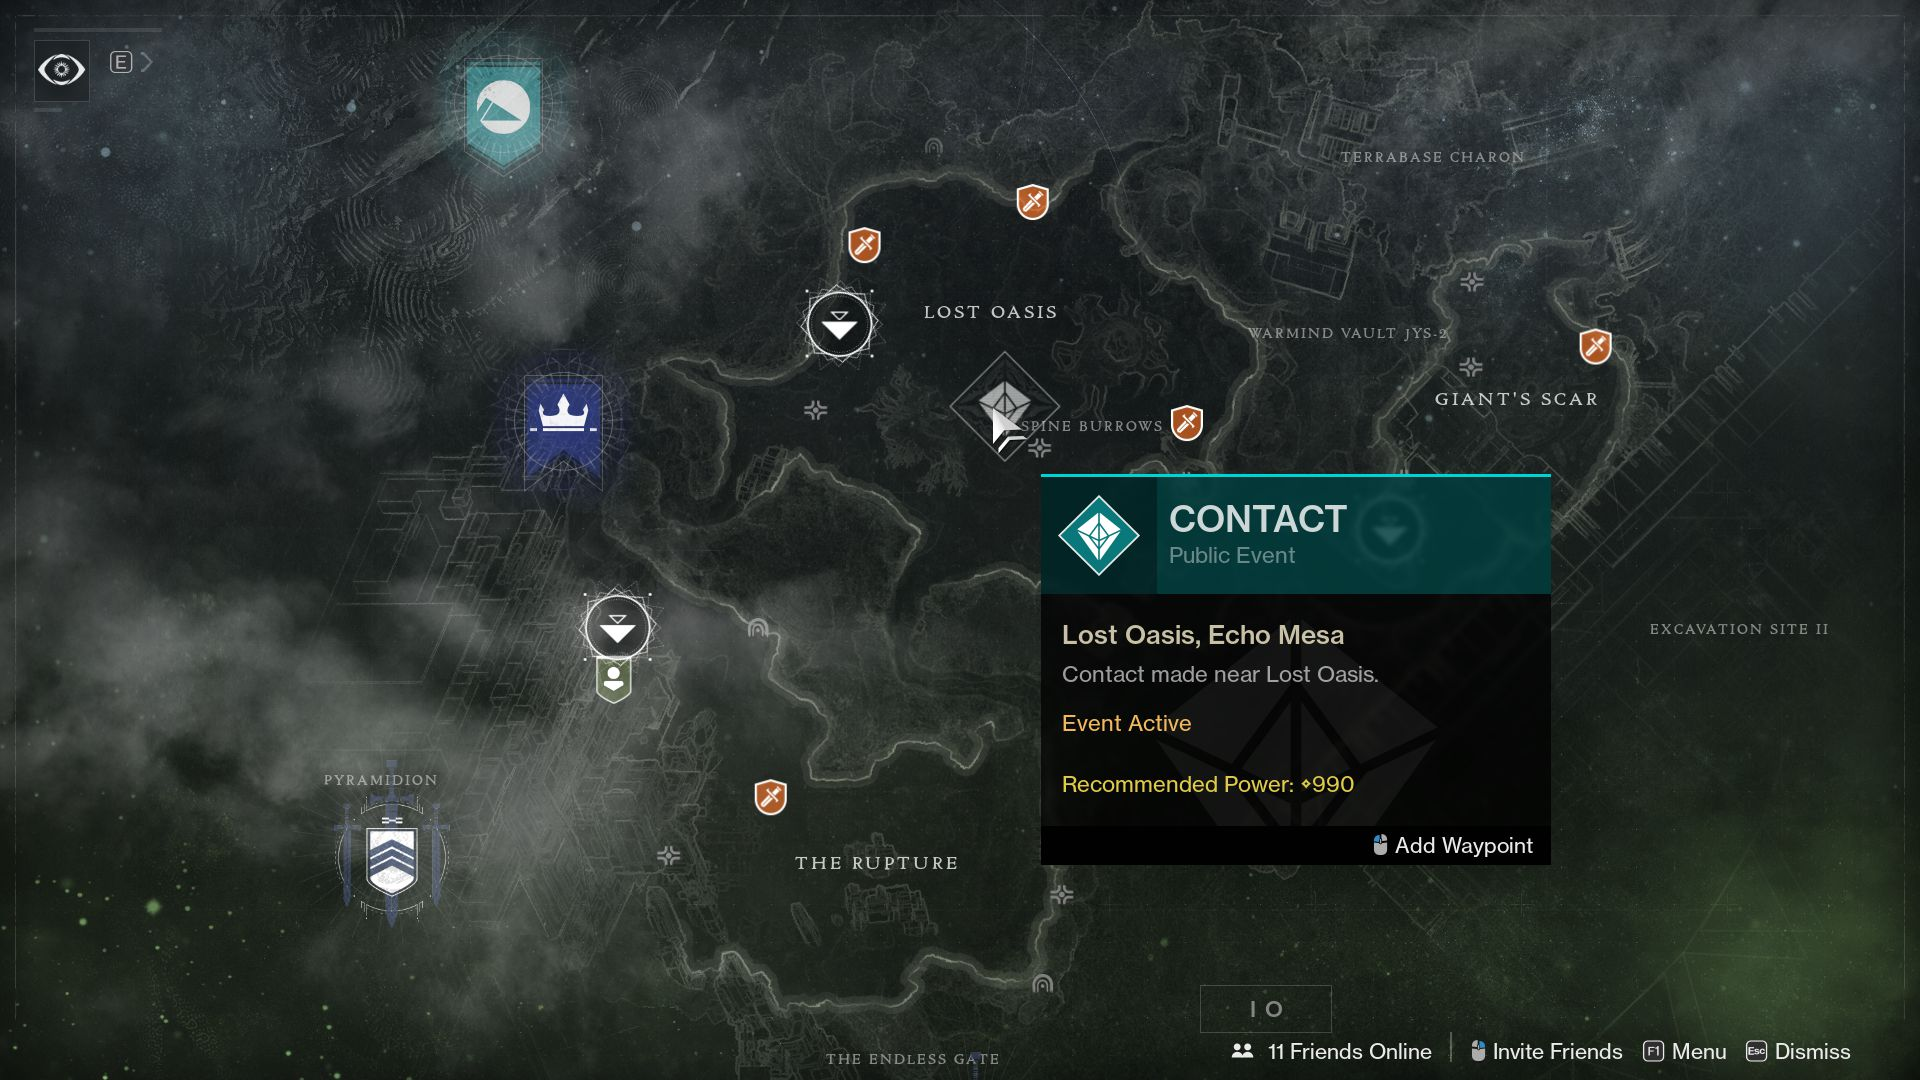 Image showing the Contact Public Event in Destiny 2.